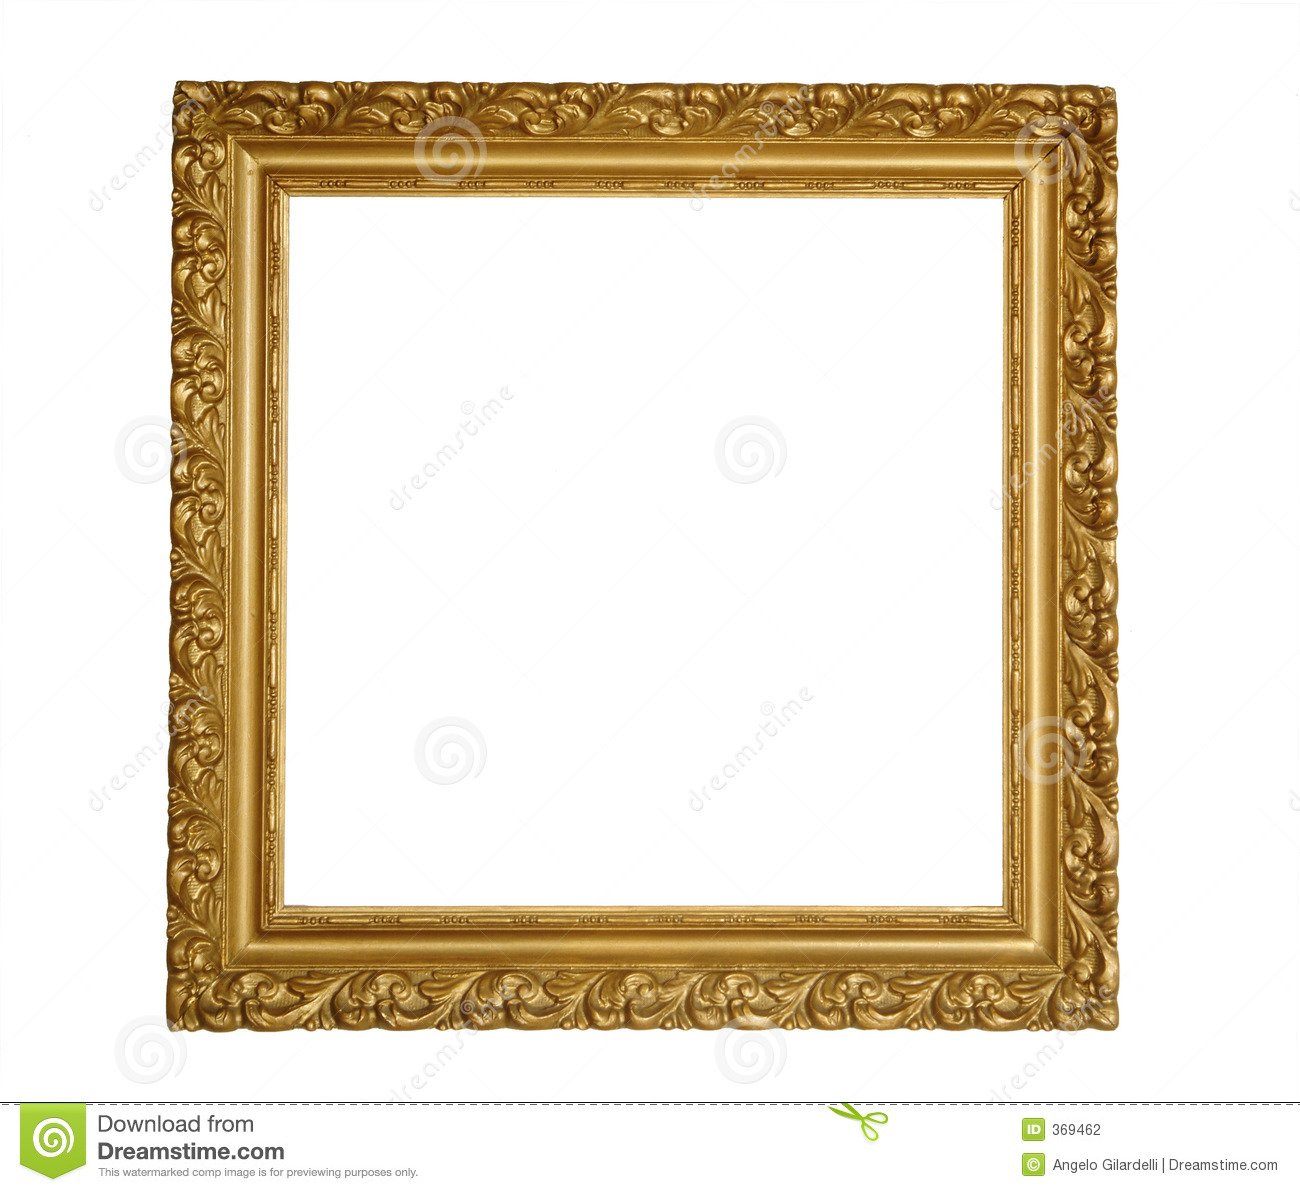 Square classic frame stock photo. Image of classic, picture - 369462